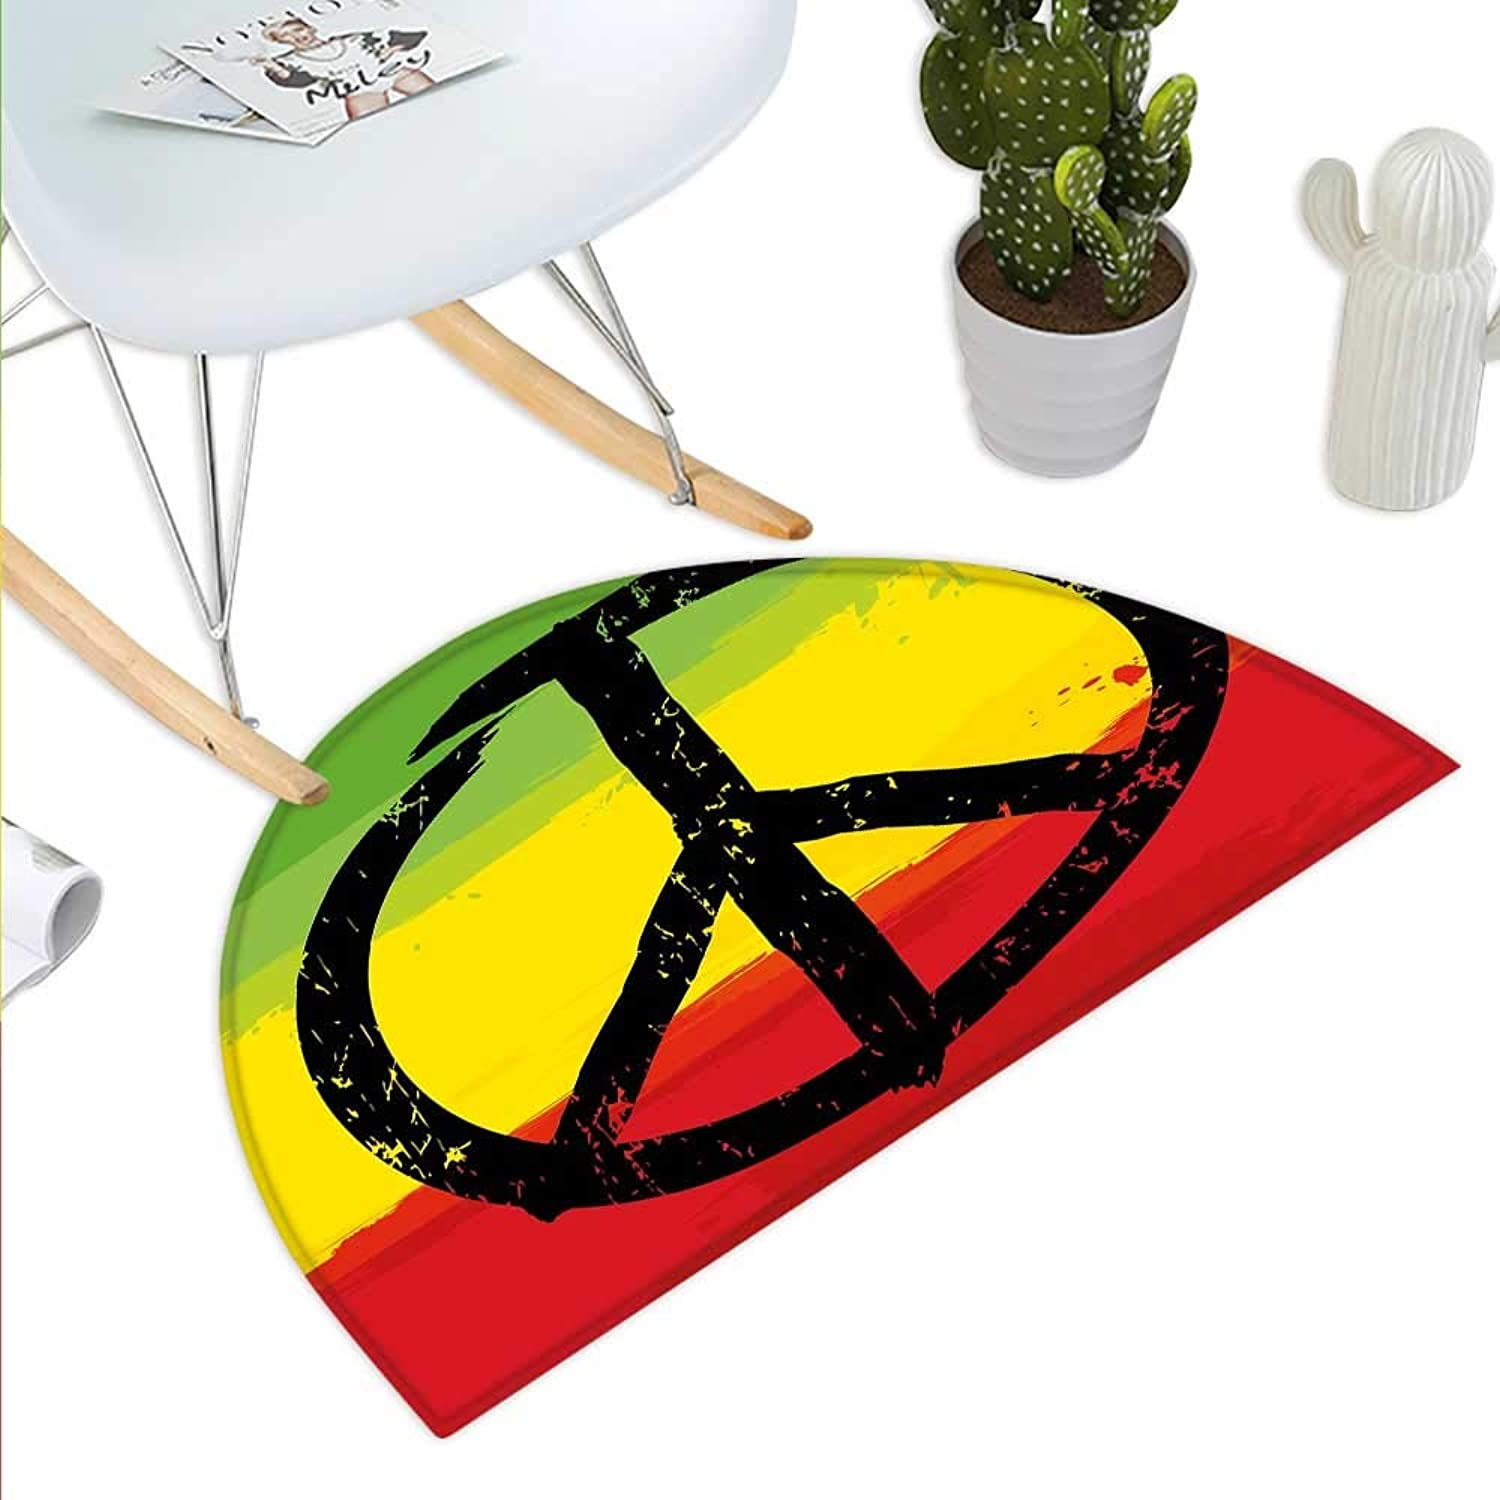 Rasta Semicircle Doormat Grunge Style Watercolor Design African Flag colors Hippie Peace Sign Halfmoon doormats H 43.3  xD 64.9  Black Green Yellow and Red